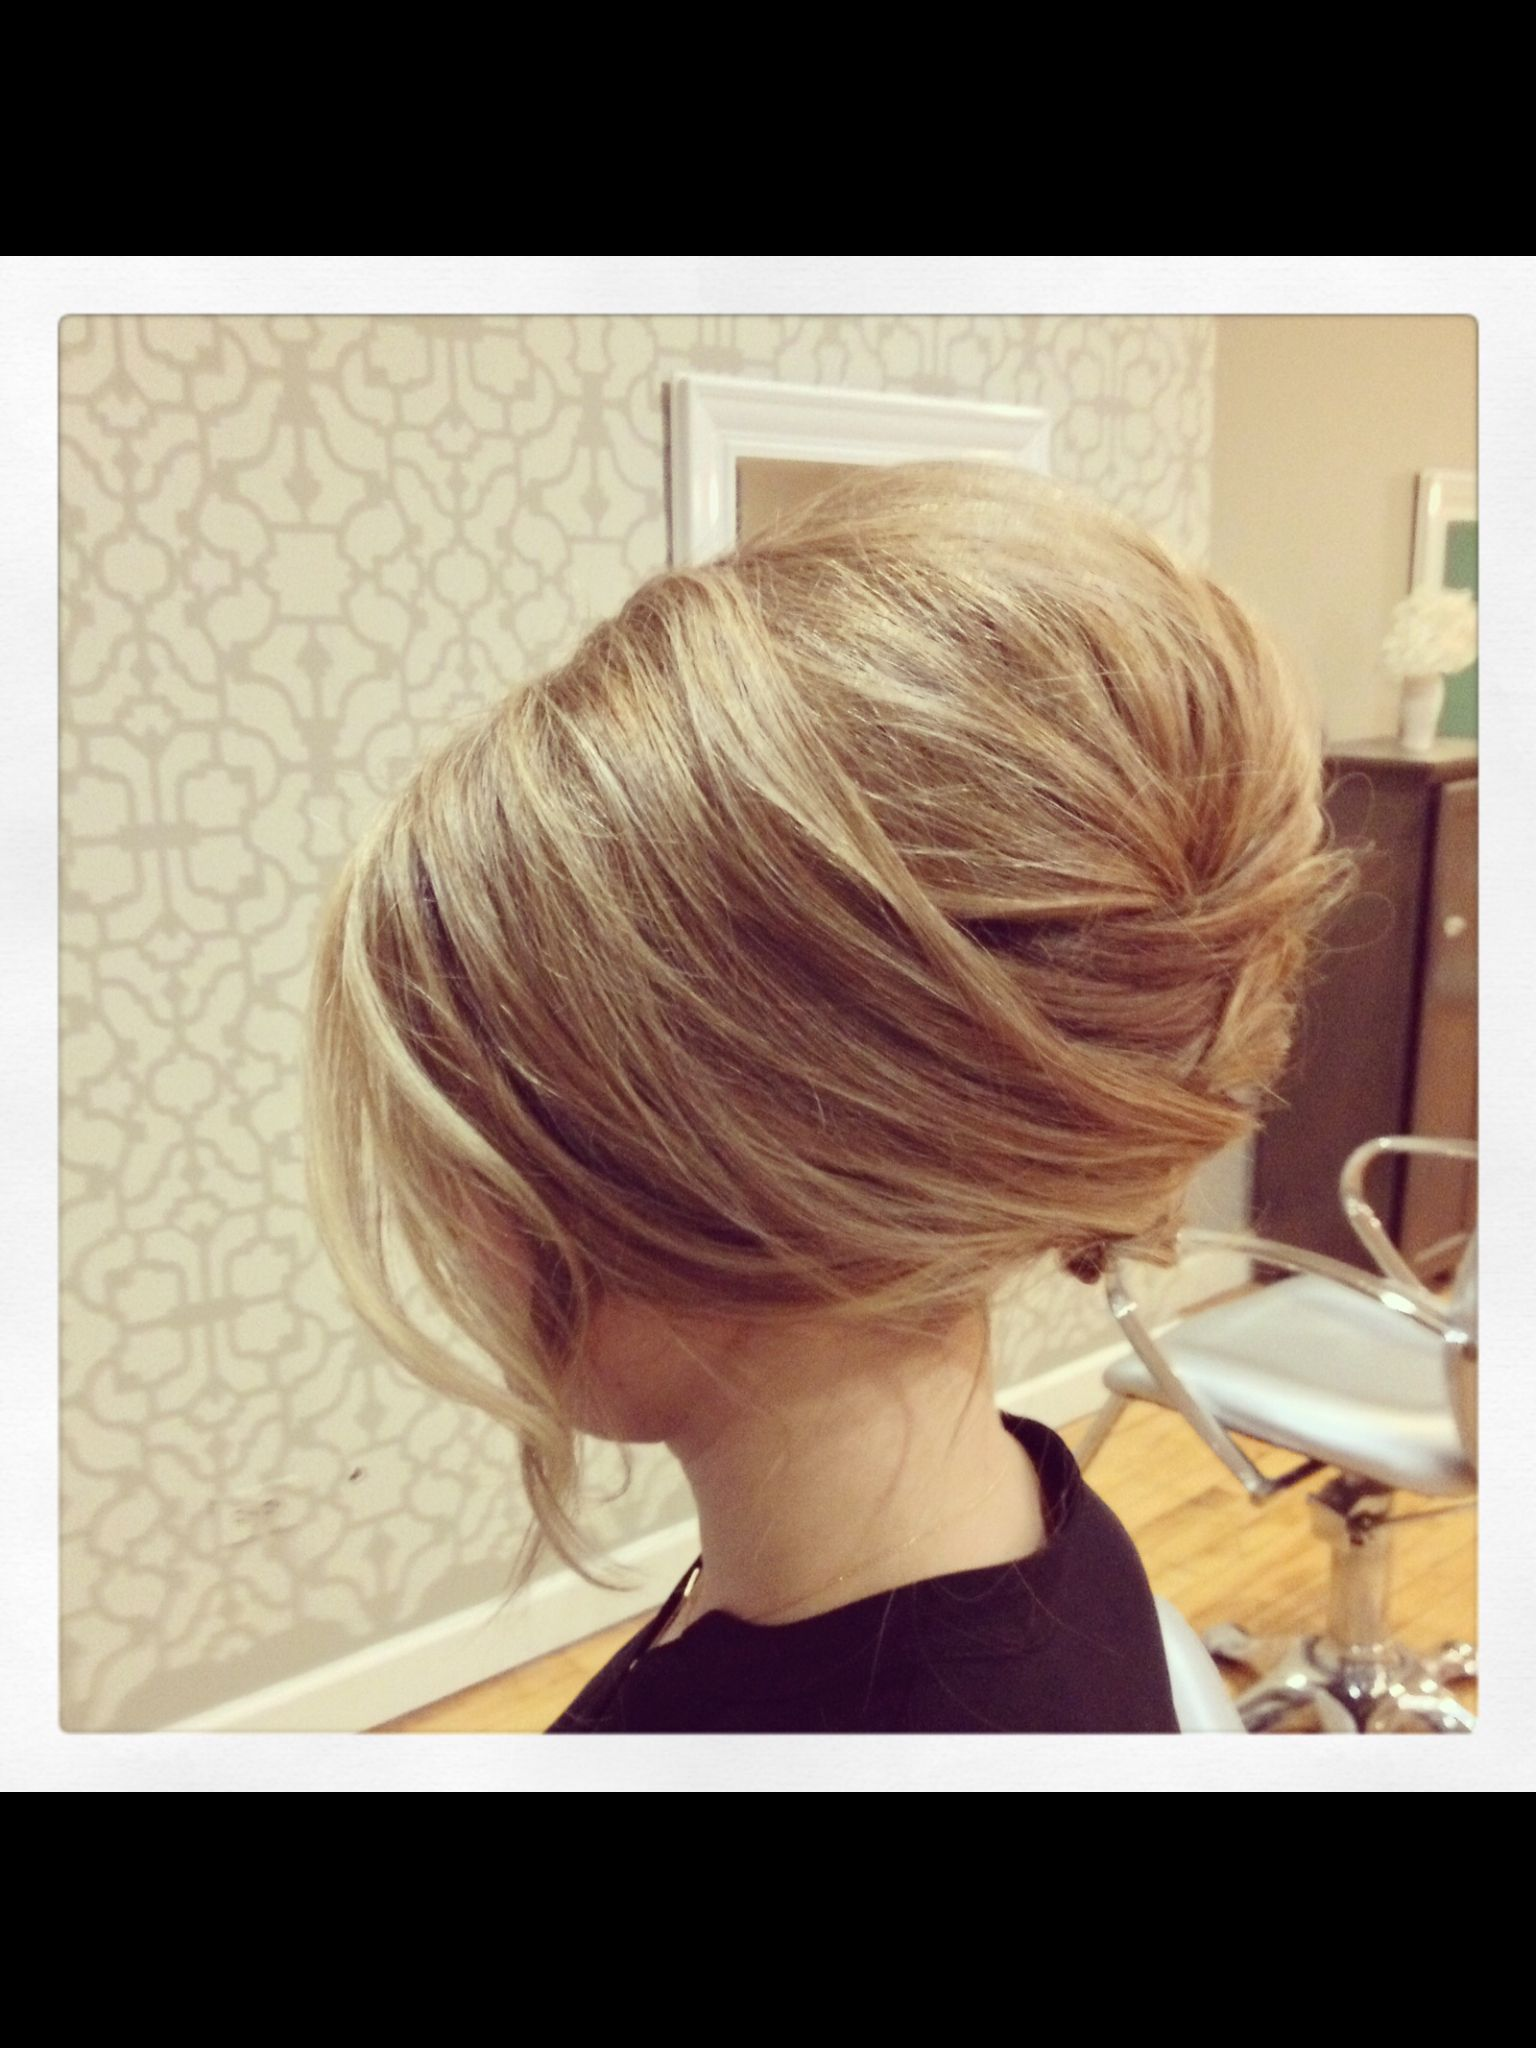 Barlow Girl Hairstyle Pinterest